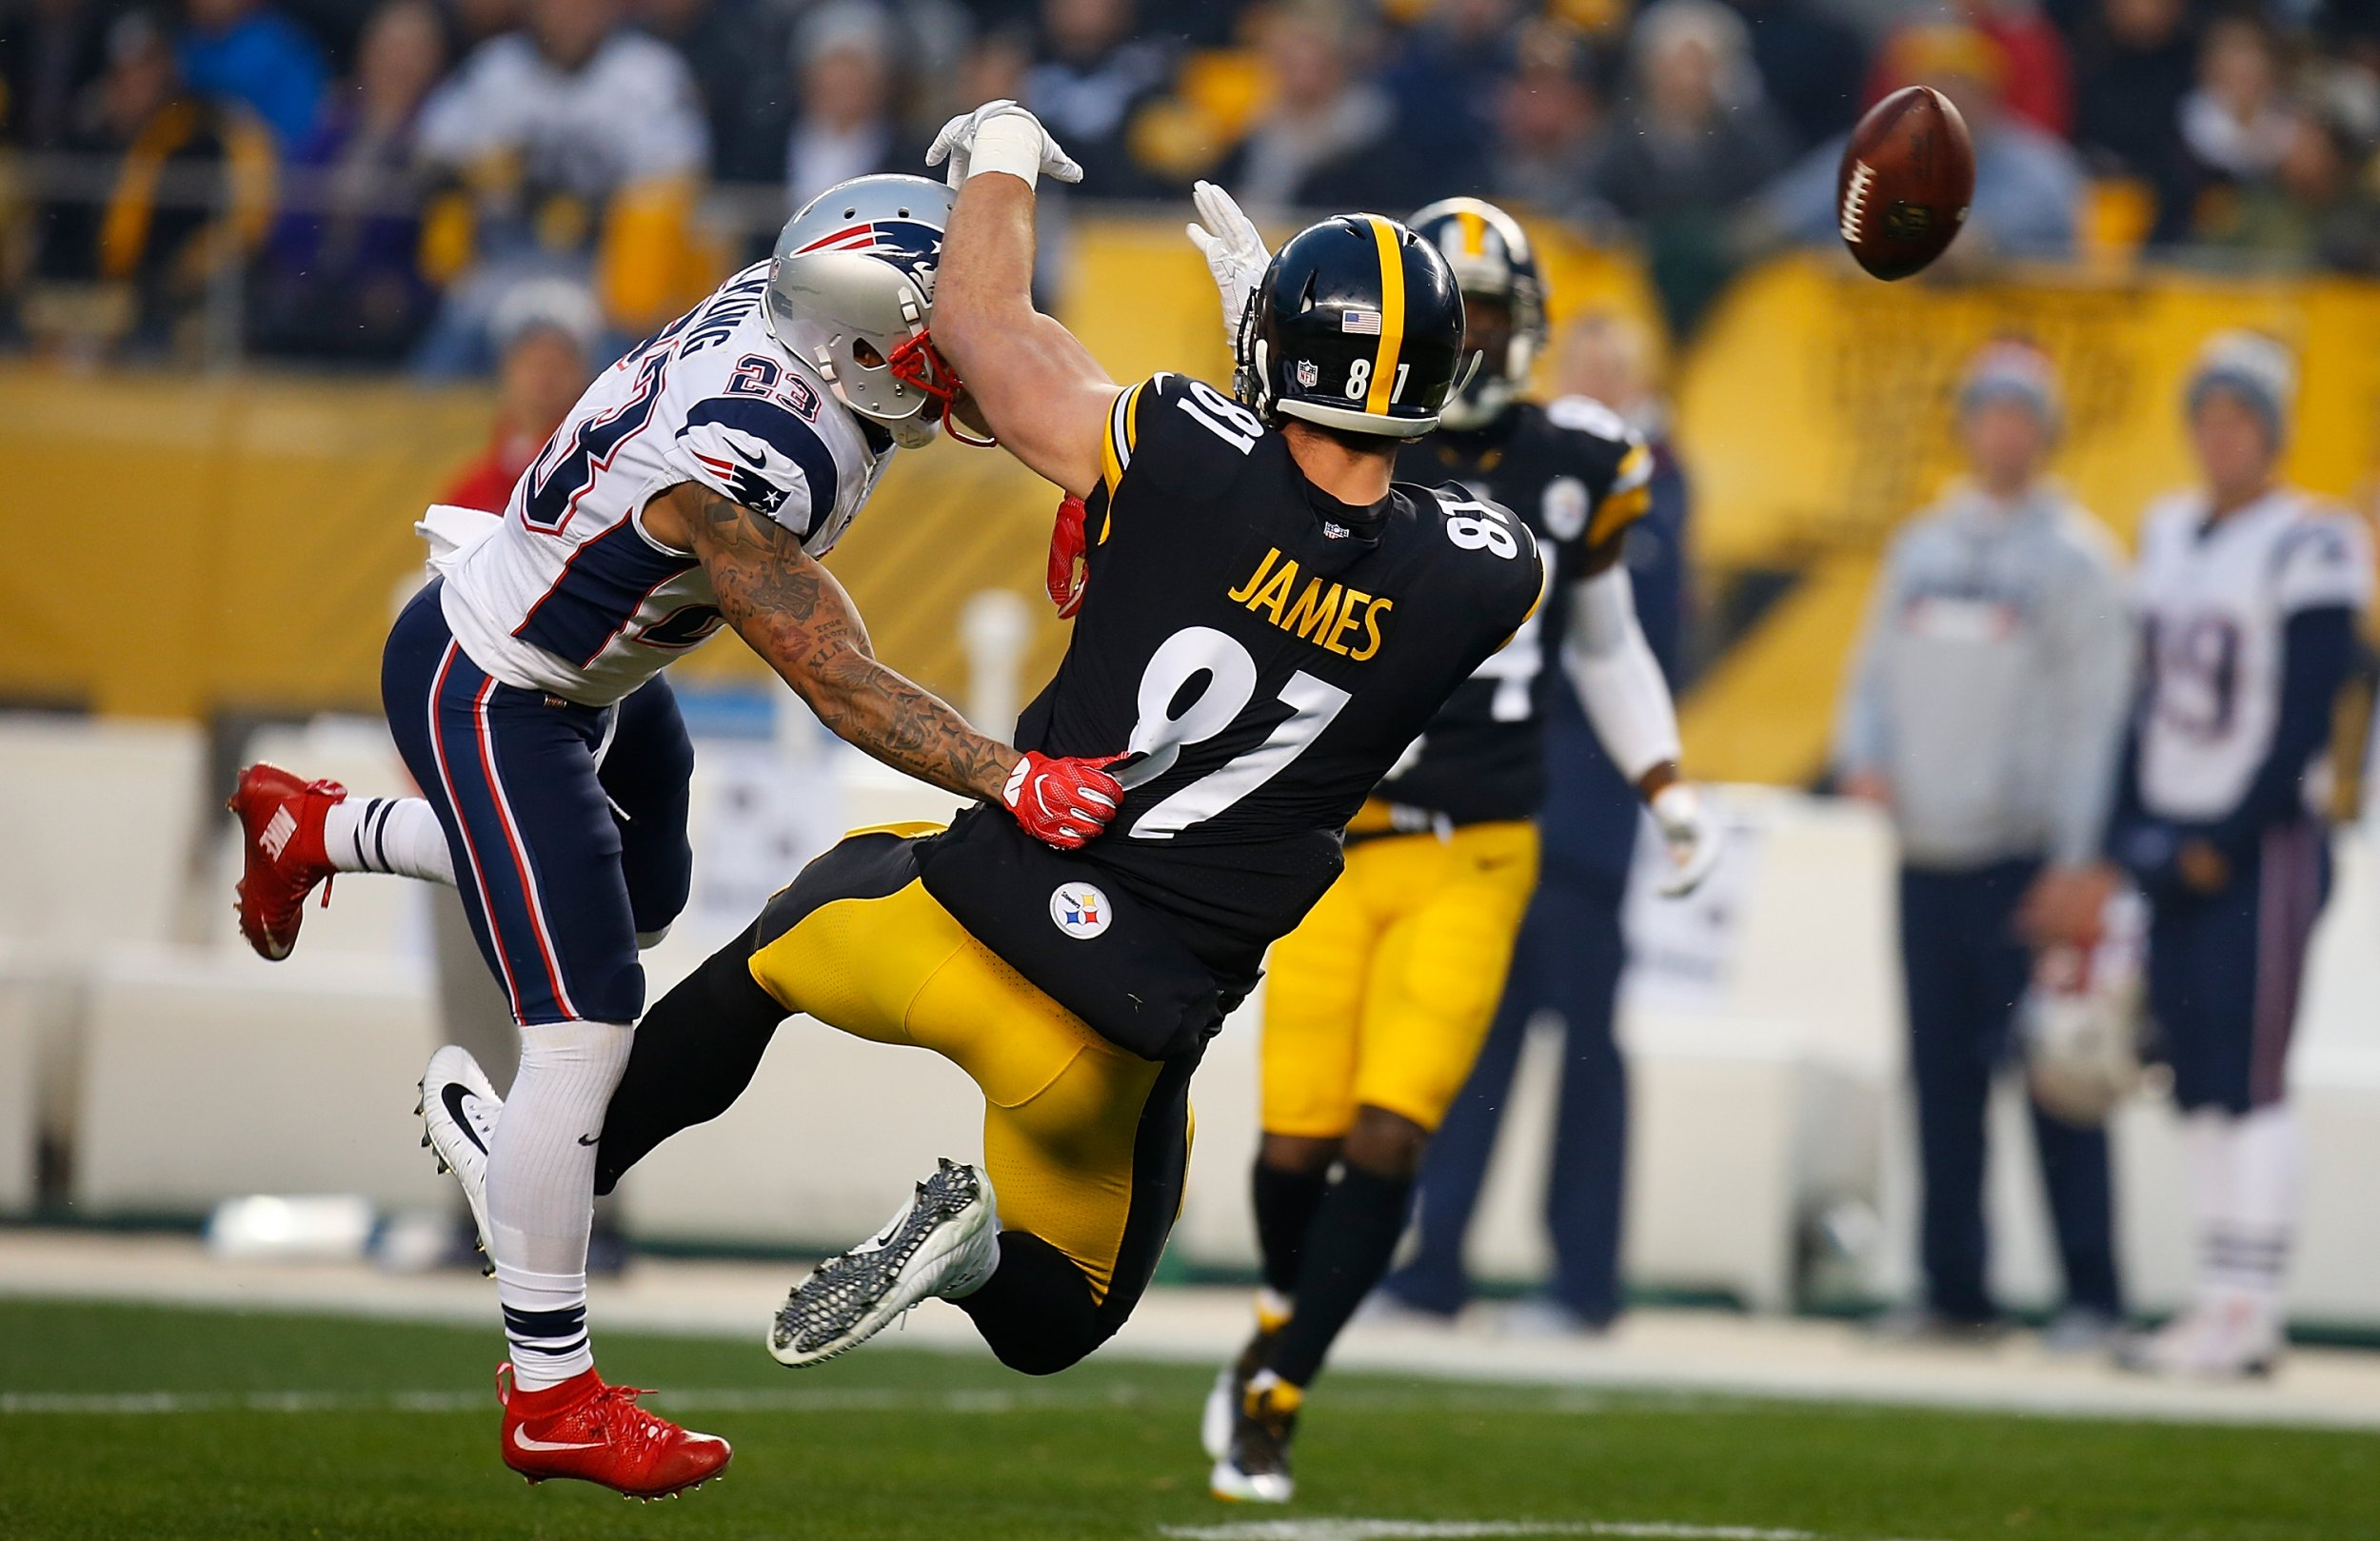 Patrick Chung of the New England Patriots, left, with the Pittsburgh Steelers' Jesse James at Heinz Field, Pittsburgh, Pennsylvania, December 17.